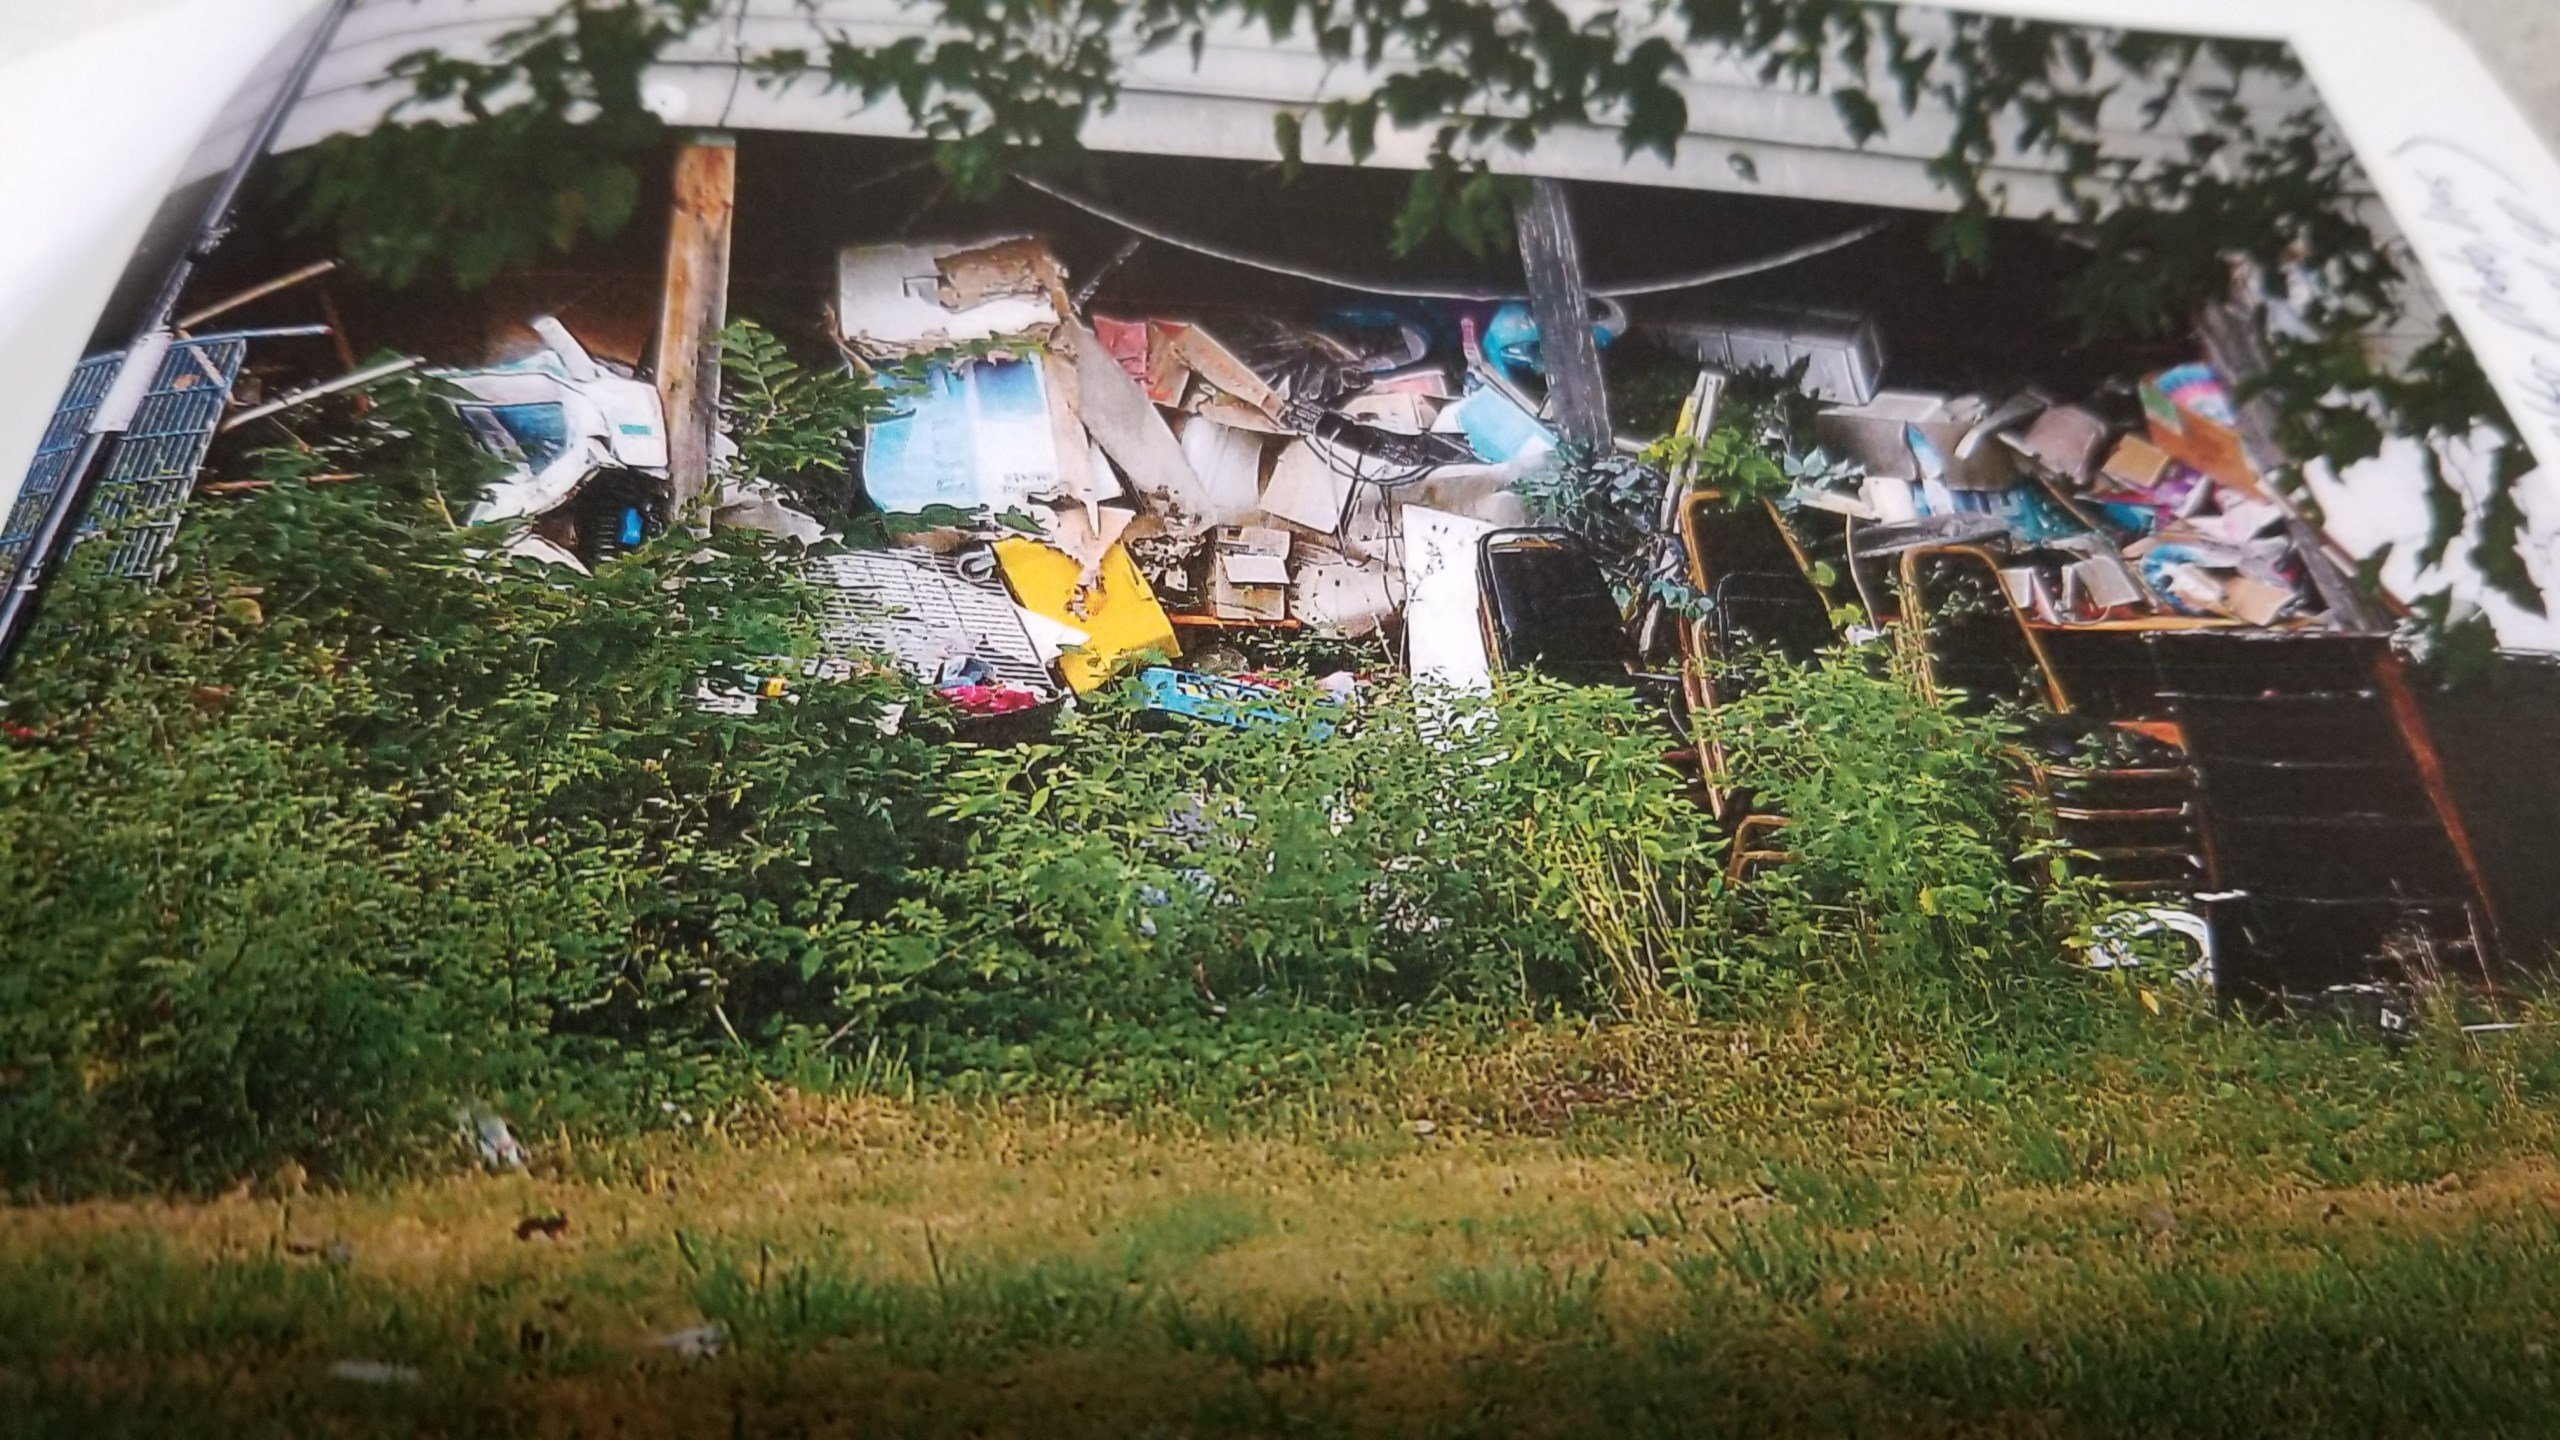 Every community has them…unsightly properties, junked vehicles